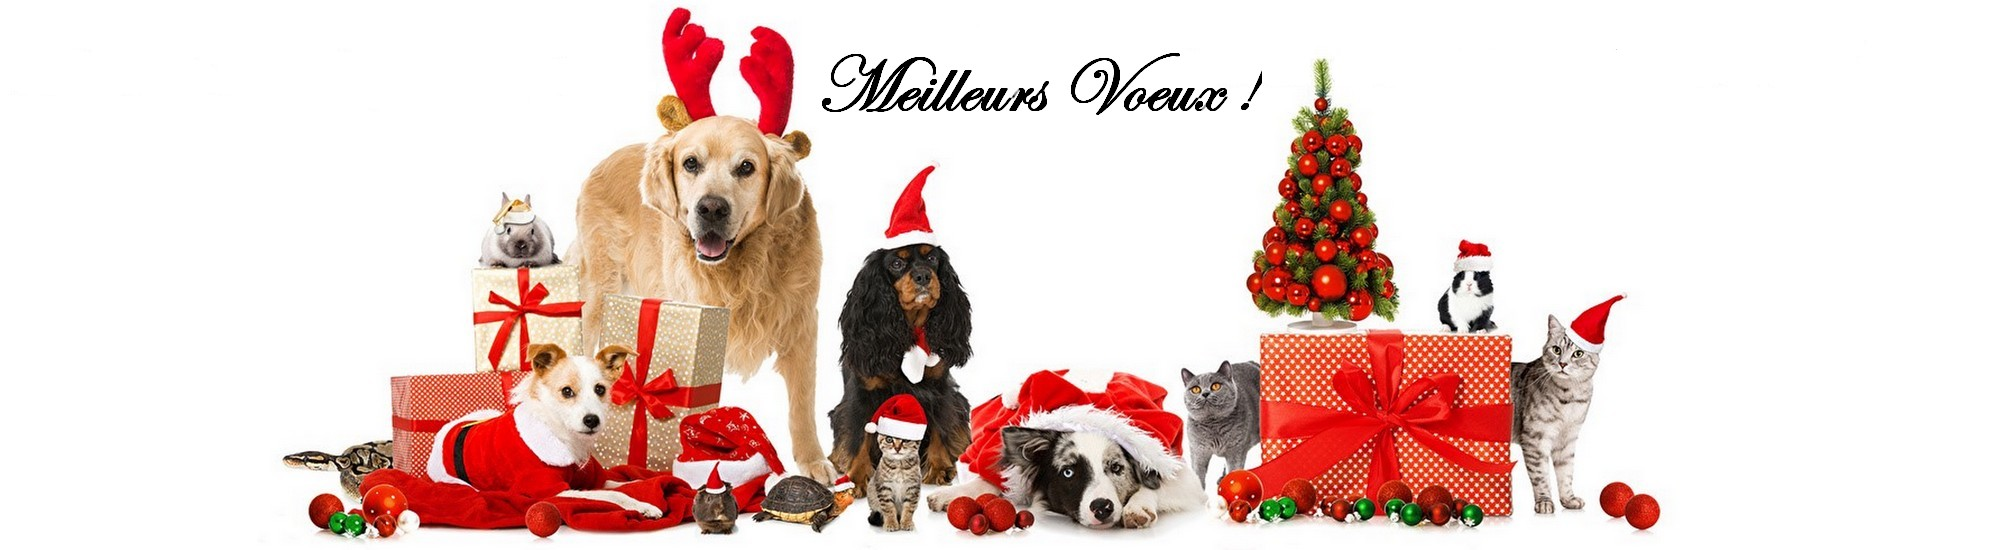 promotions noel animaux